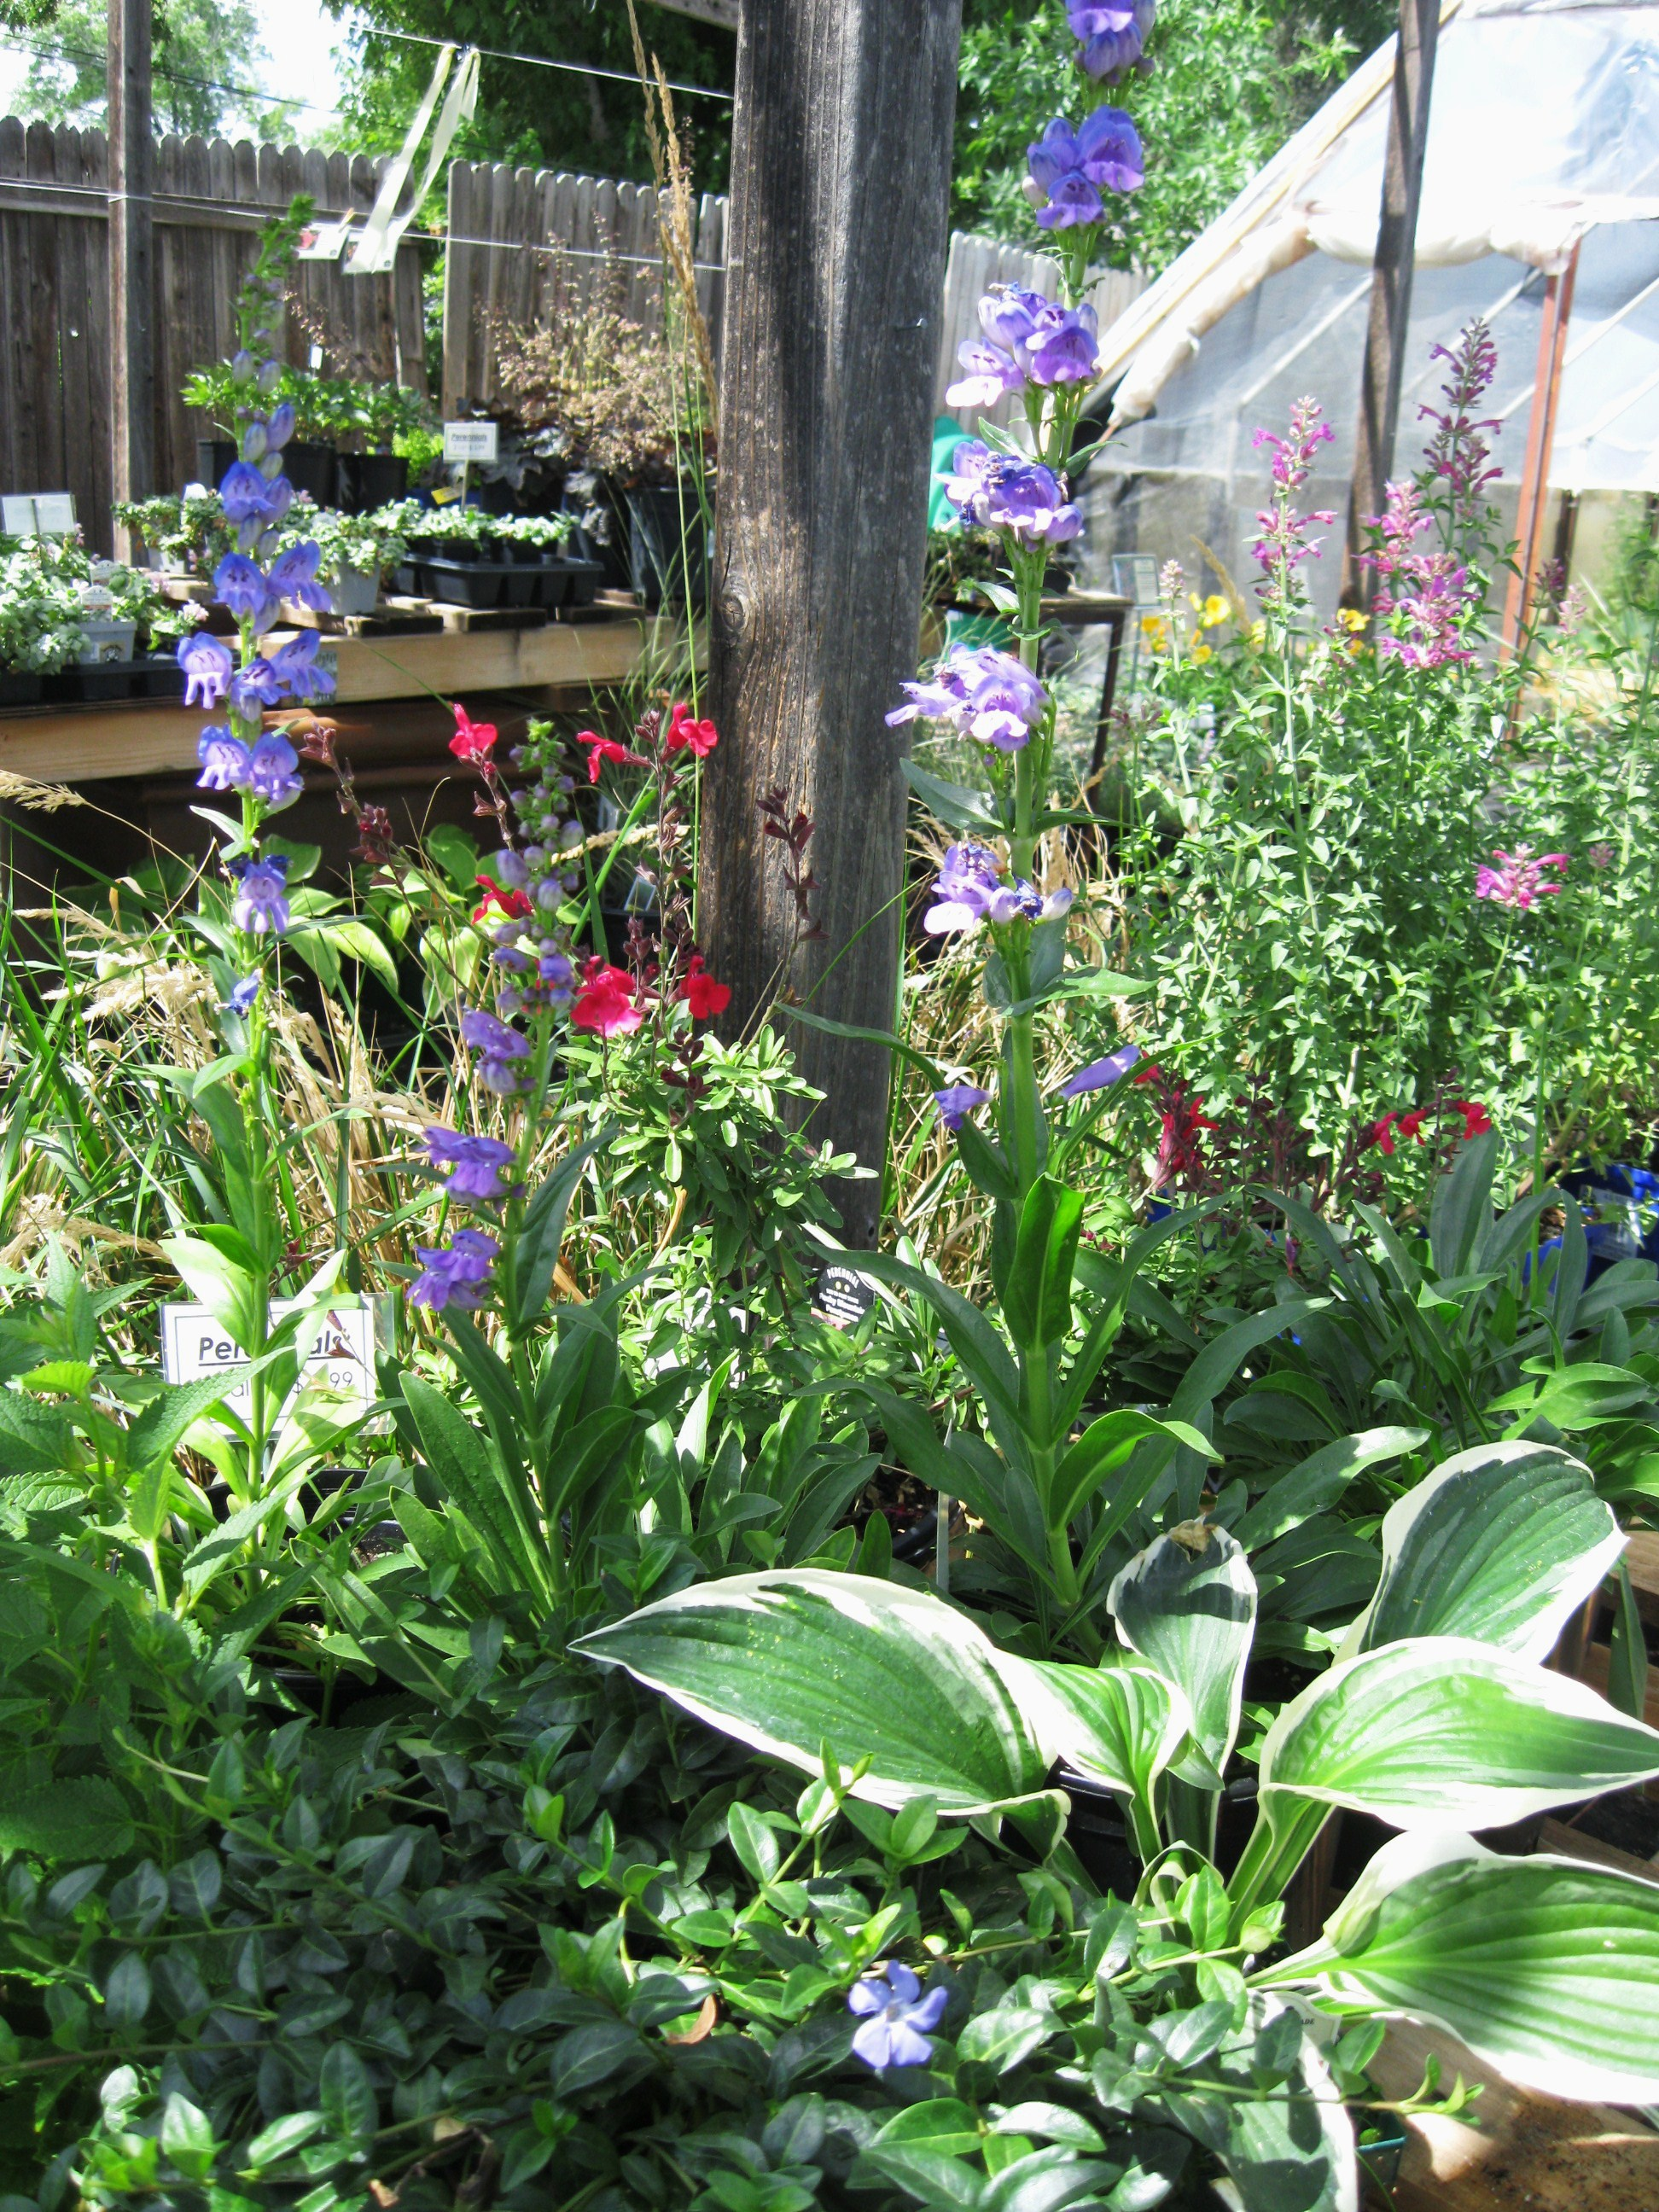 Perennials Hardy Plants For Your Garden Sunset Greenhouse